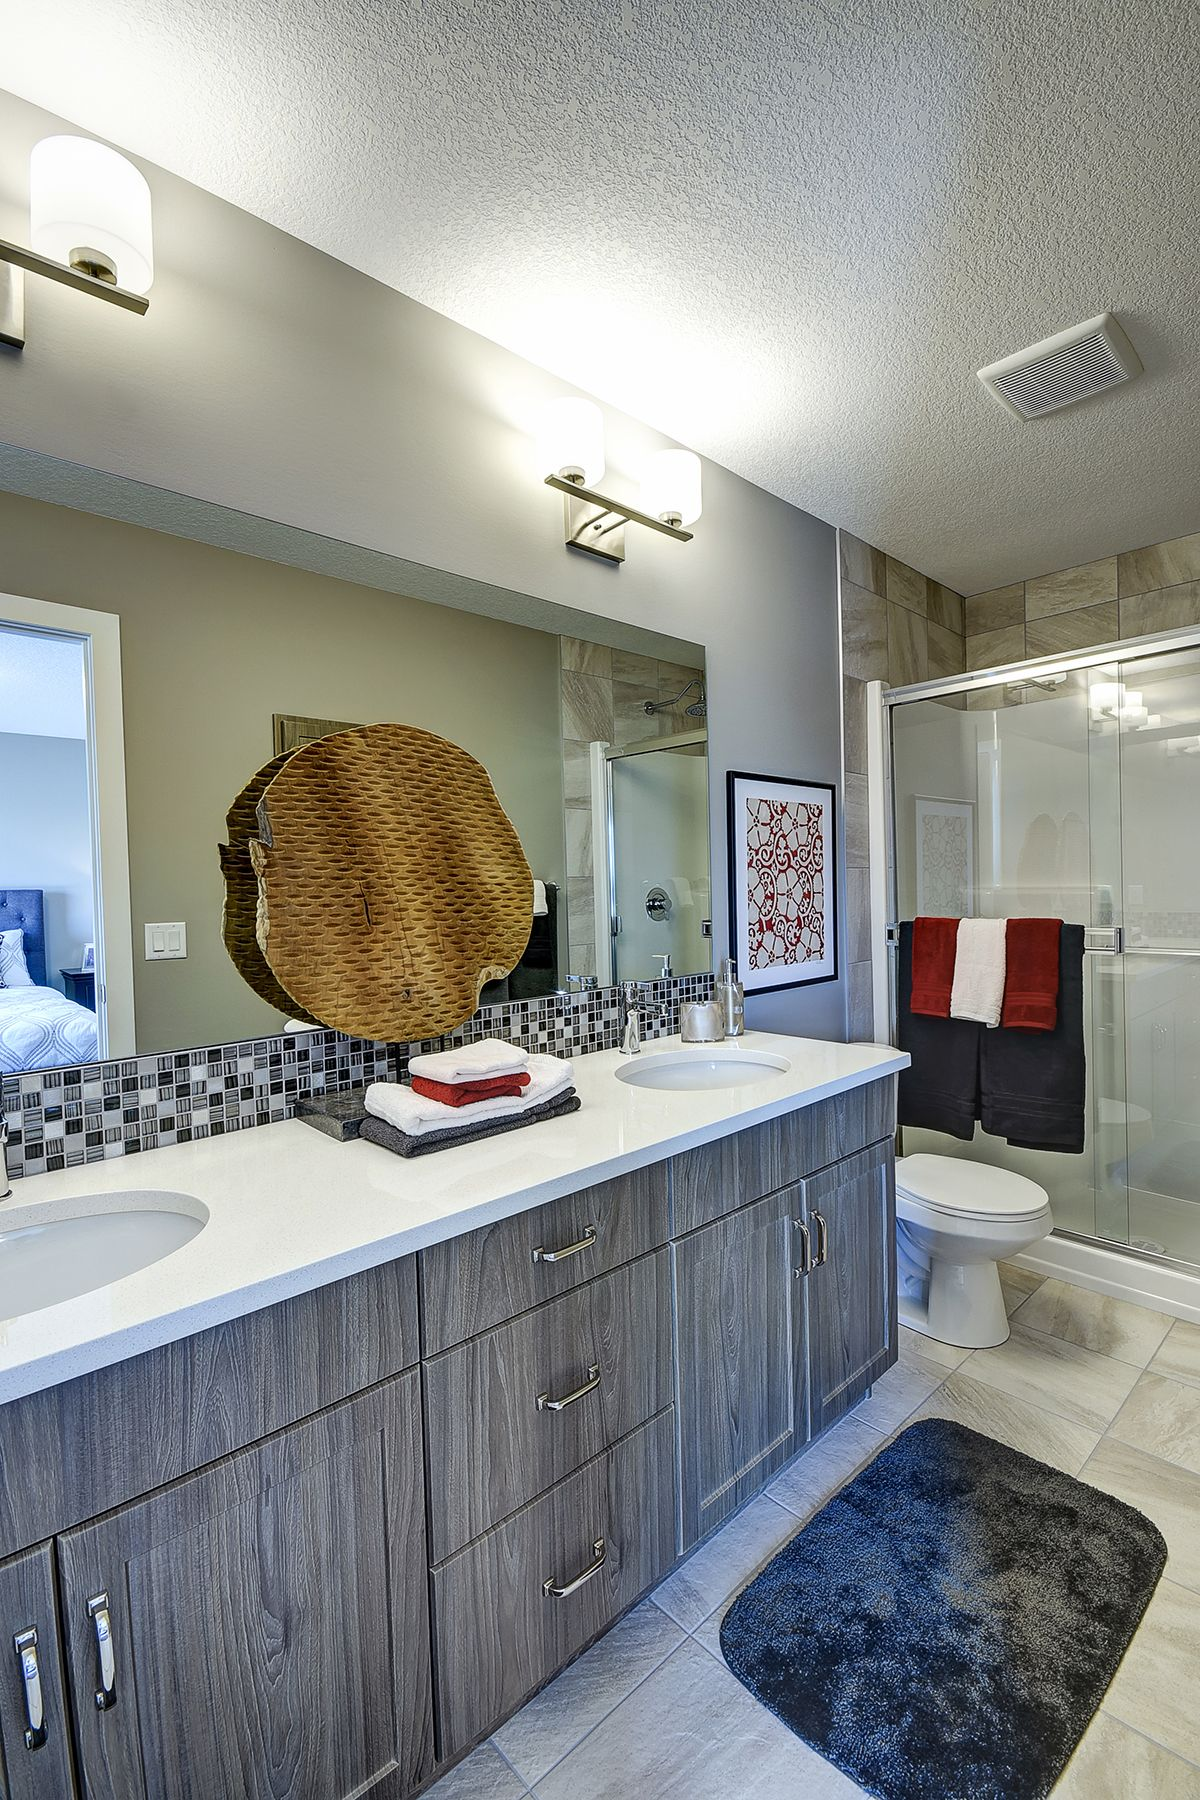 4 Piece Master Ensuite Features Dual Sinks And Walk In Closet House Plans Home Walk In Closet